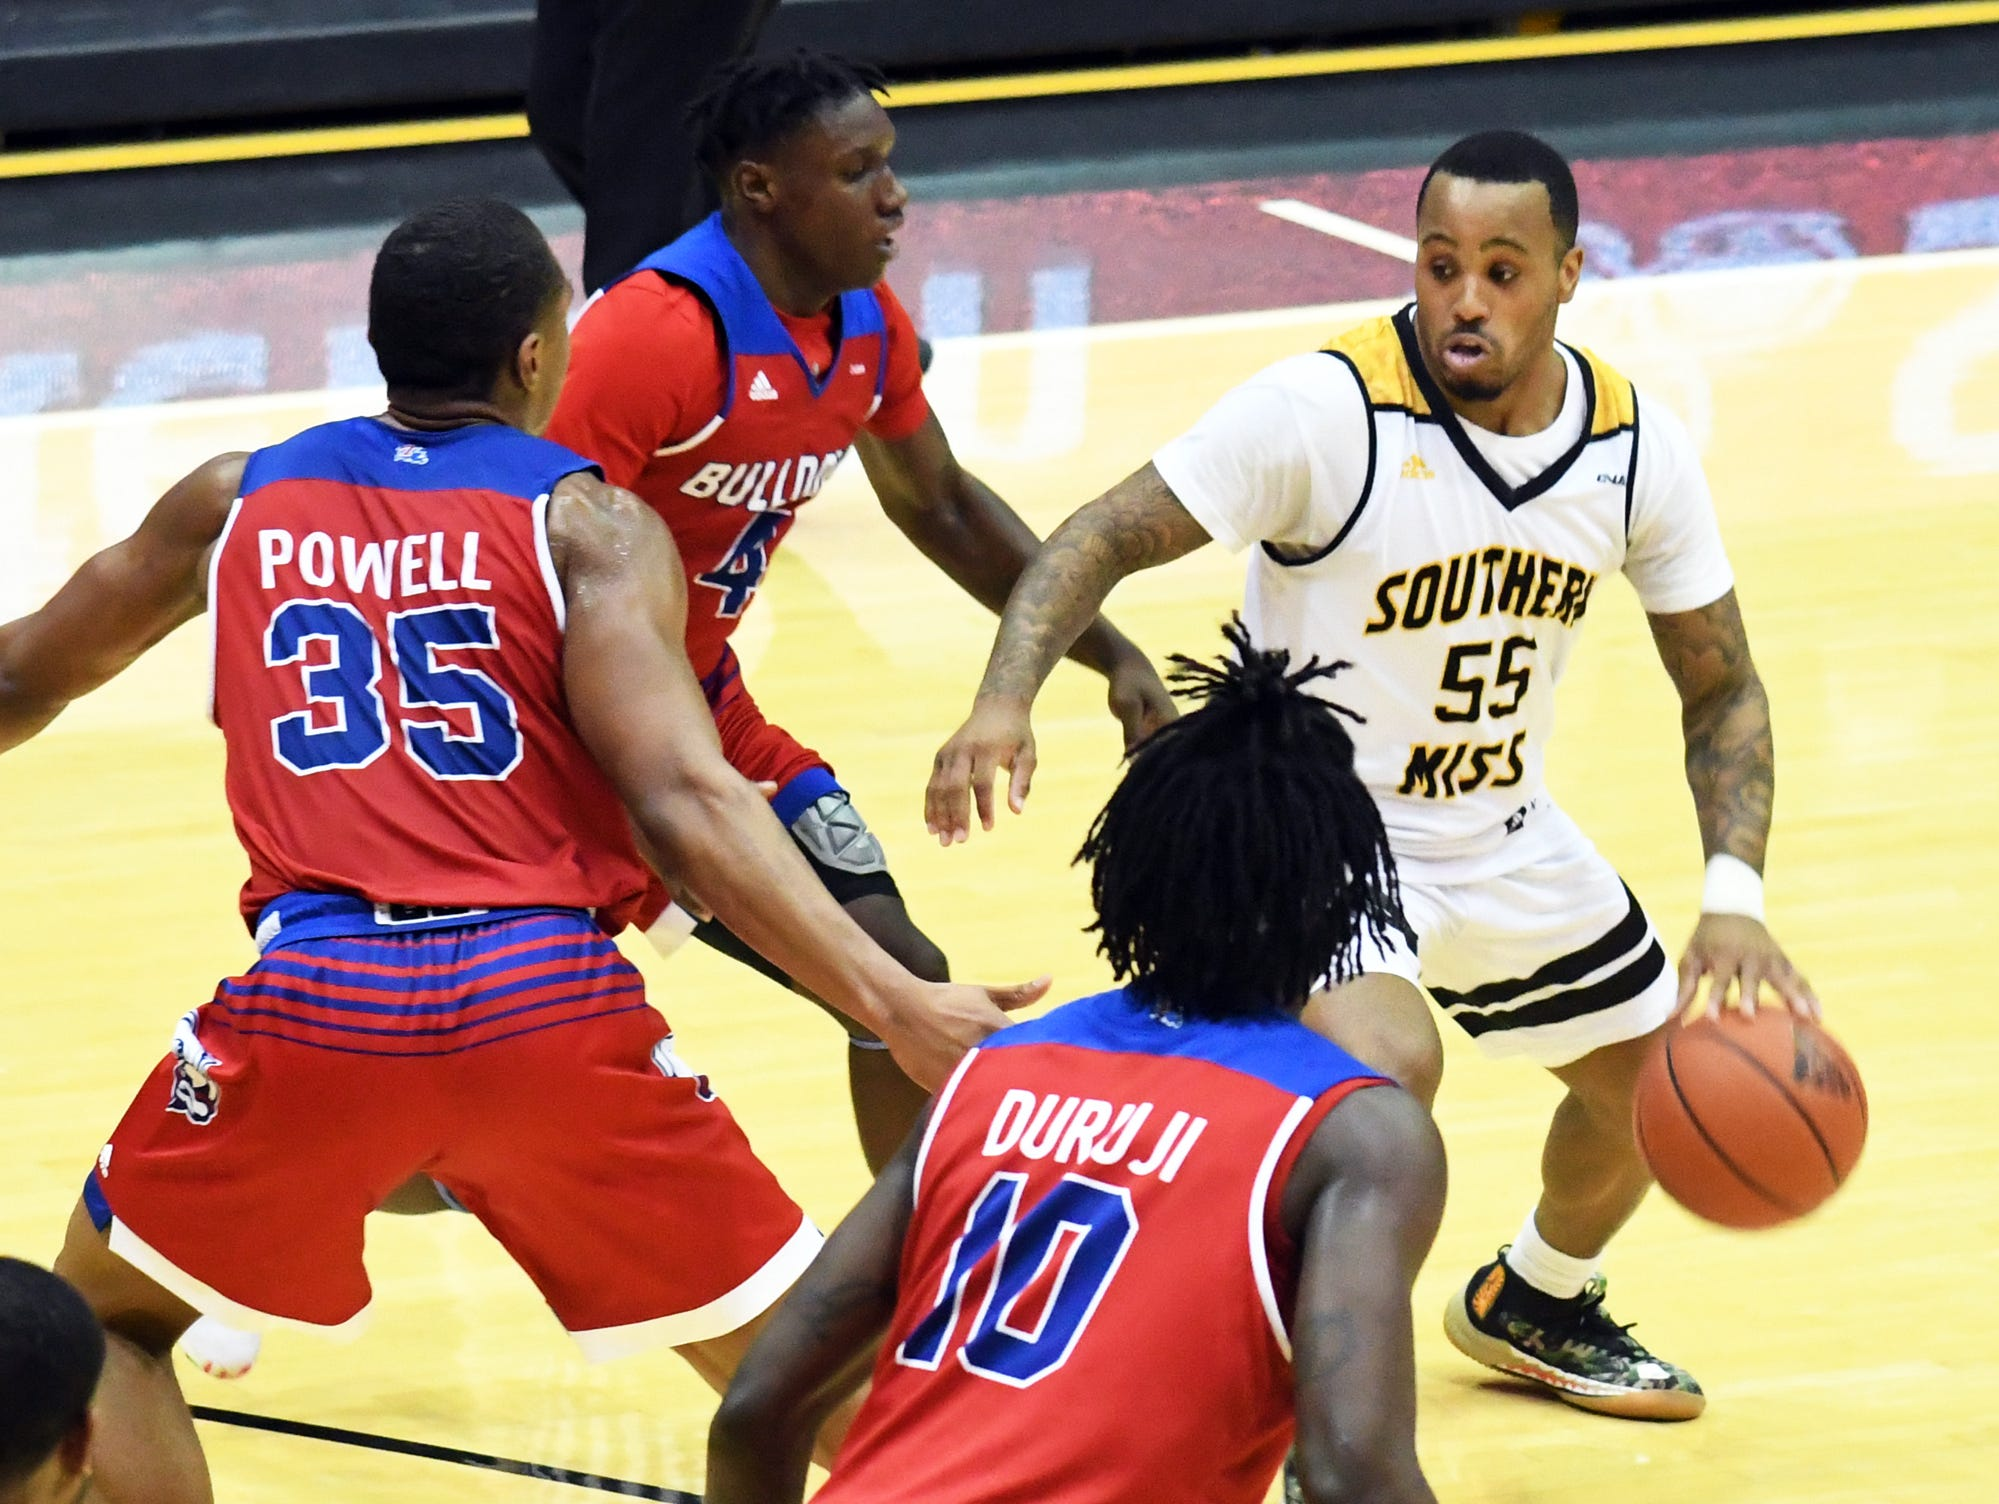 Southern Miss guard Tyree Griffin fights off a defender in a game against Louisiana Tech in Reed Green Coliseum on Saturday, February 9, 2019.